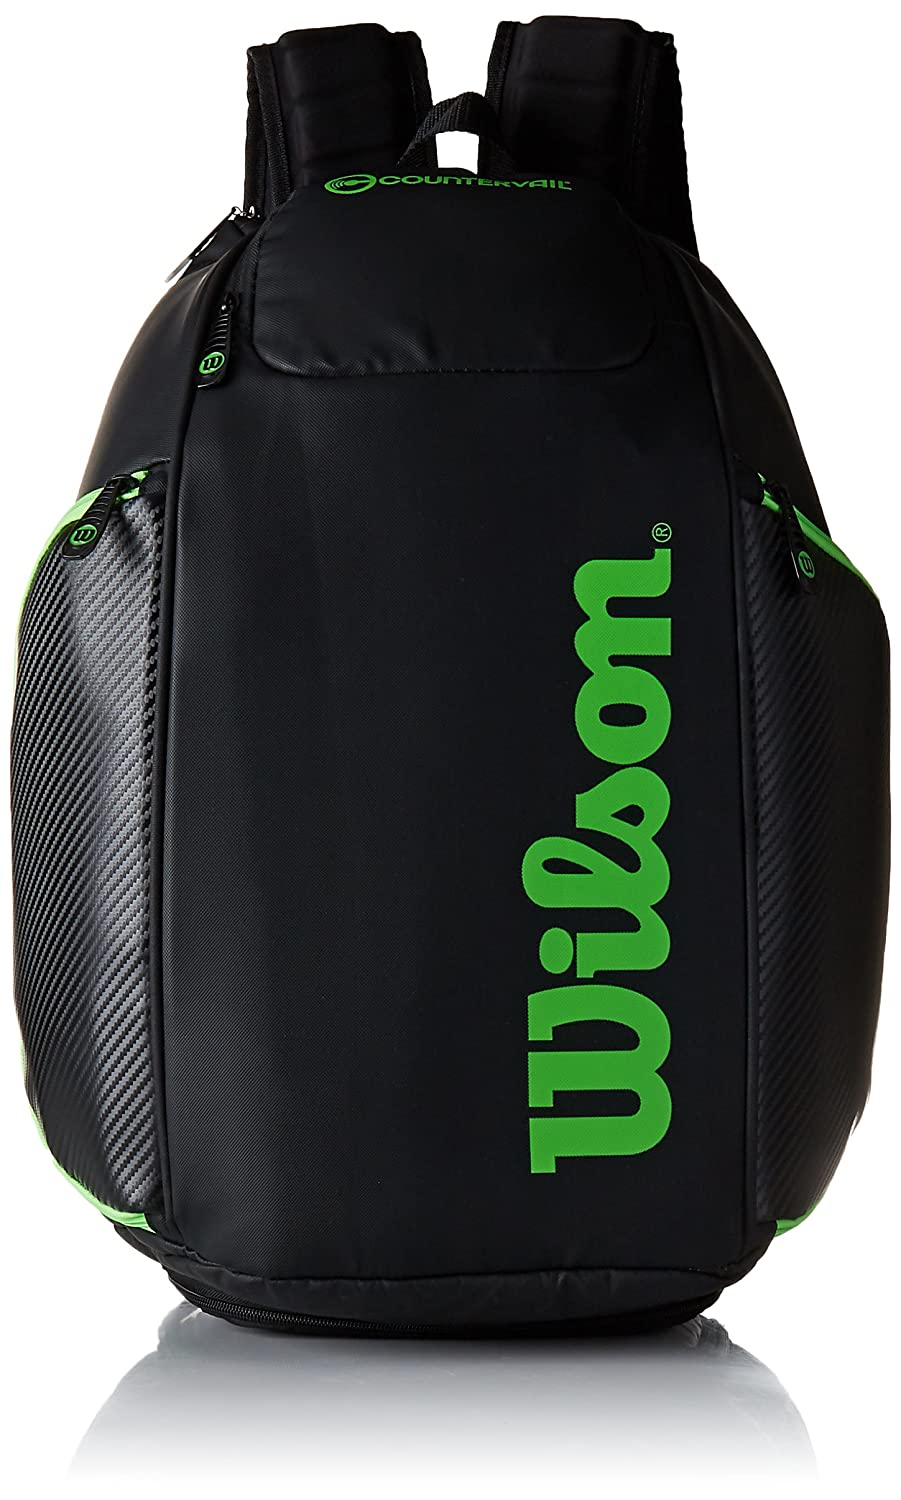 Wilson Vancouver Backpack Mochila, Unisex Adulto, Negro/Verde (Black/Green), Talla Única WRZ842796